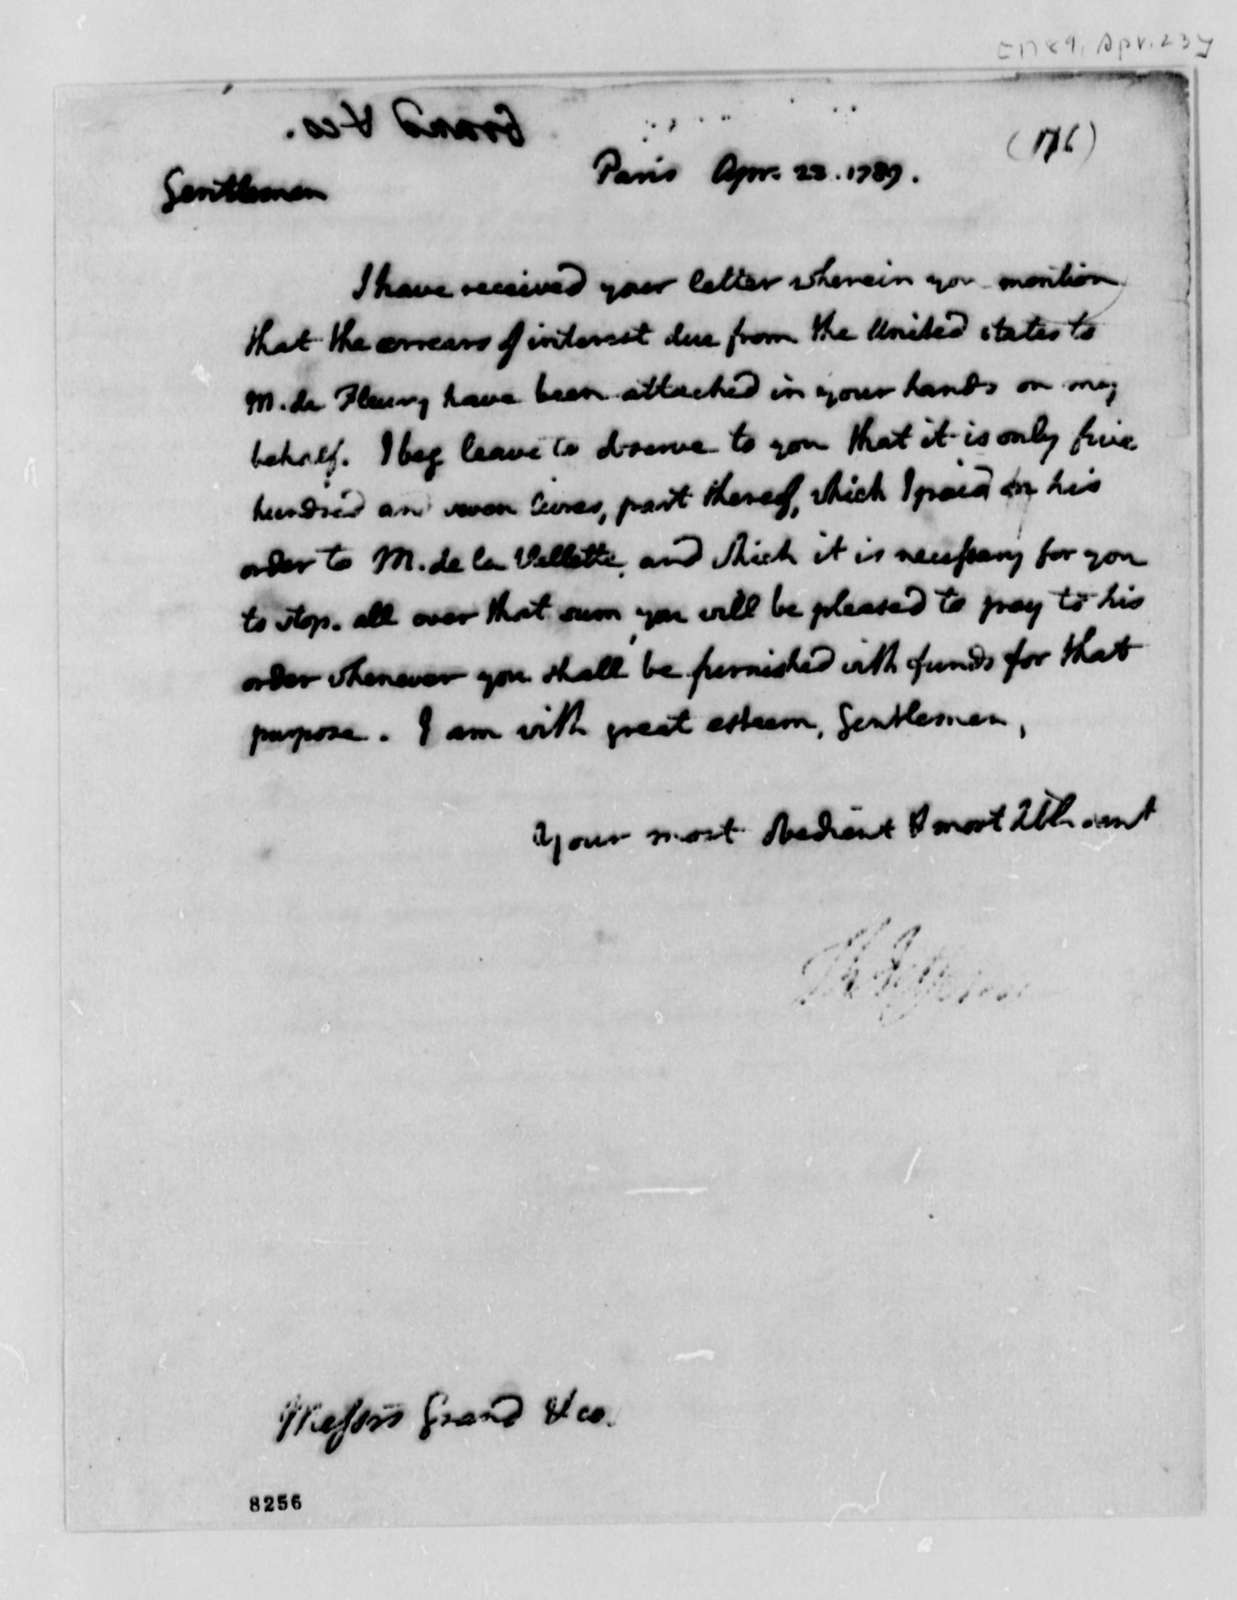 Thomas Jefferson to Ferdinand Grand & Company, April 23, 1789